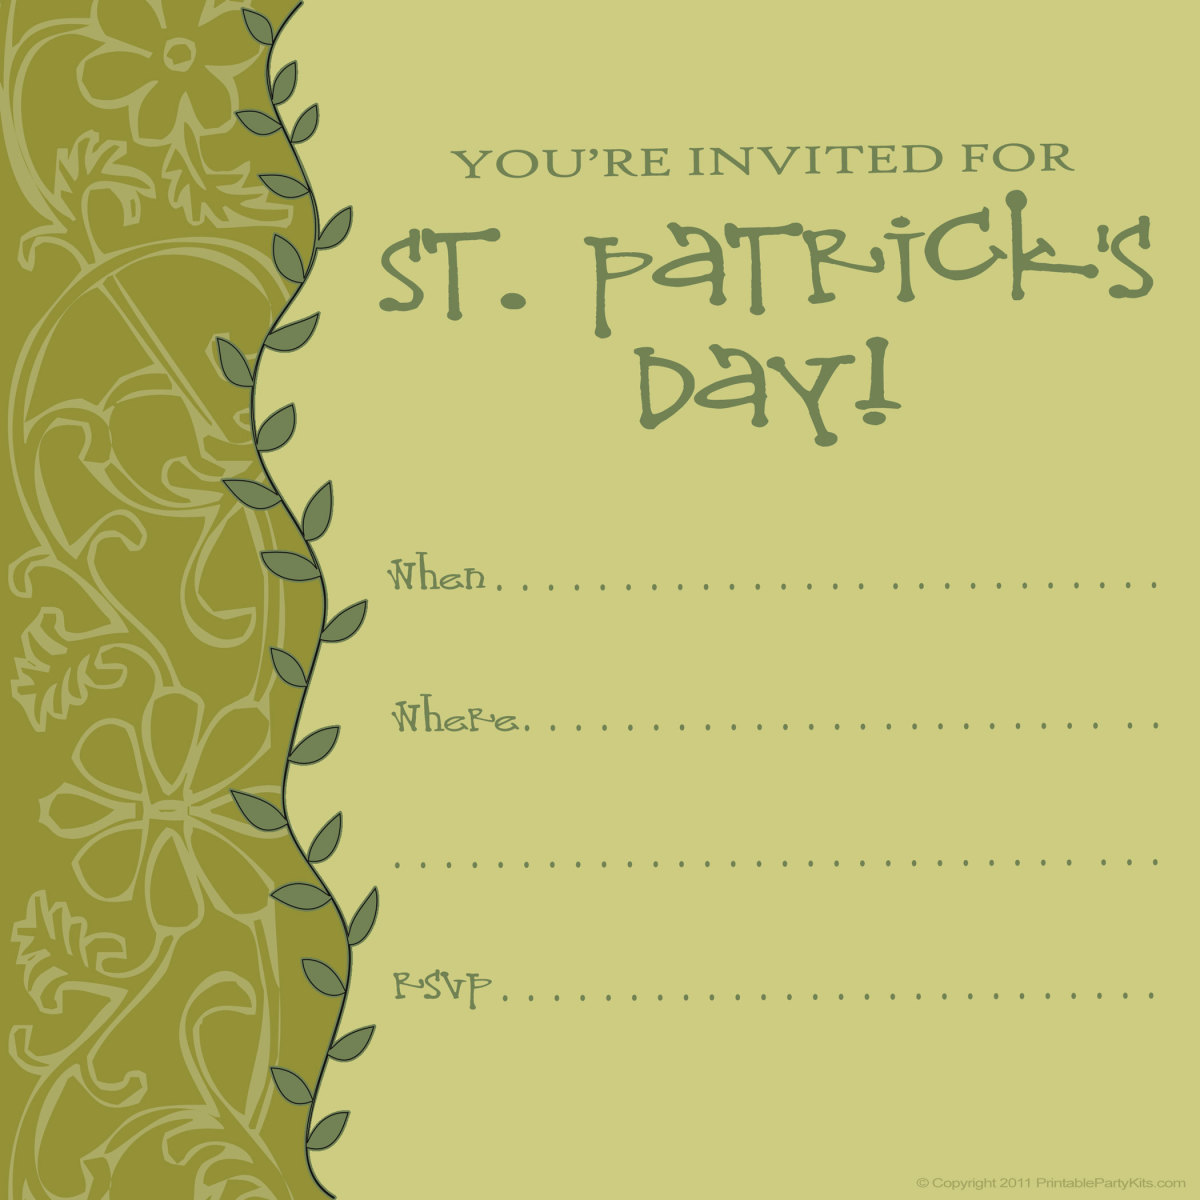 Free printable St. Patrick's Day invitation with leaves and a pattern in shades of green